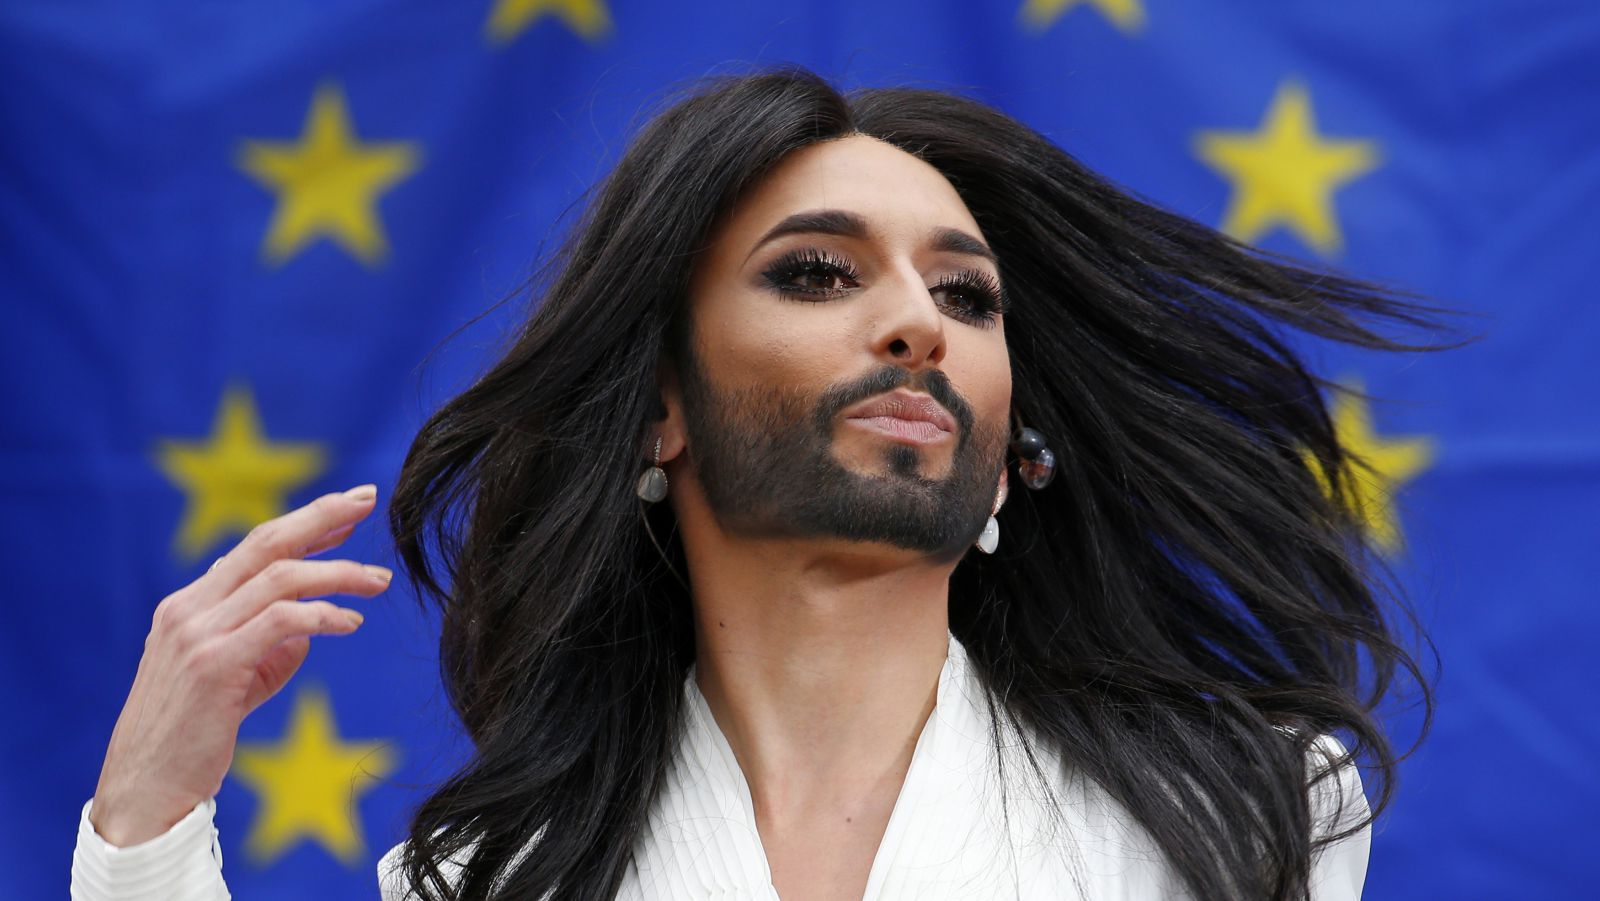 Eurovision Man with Beard in Womans Clothes